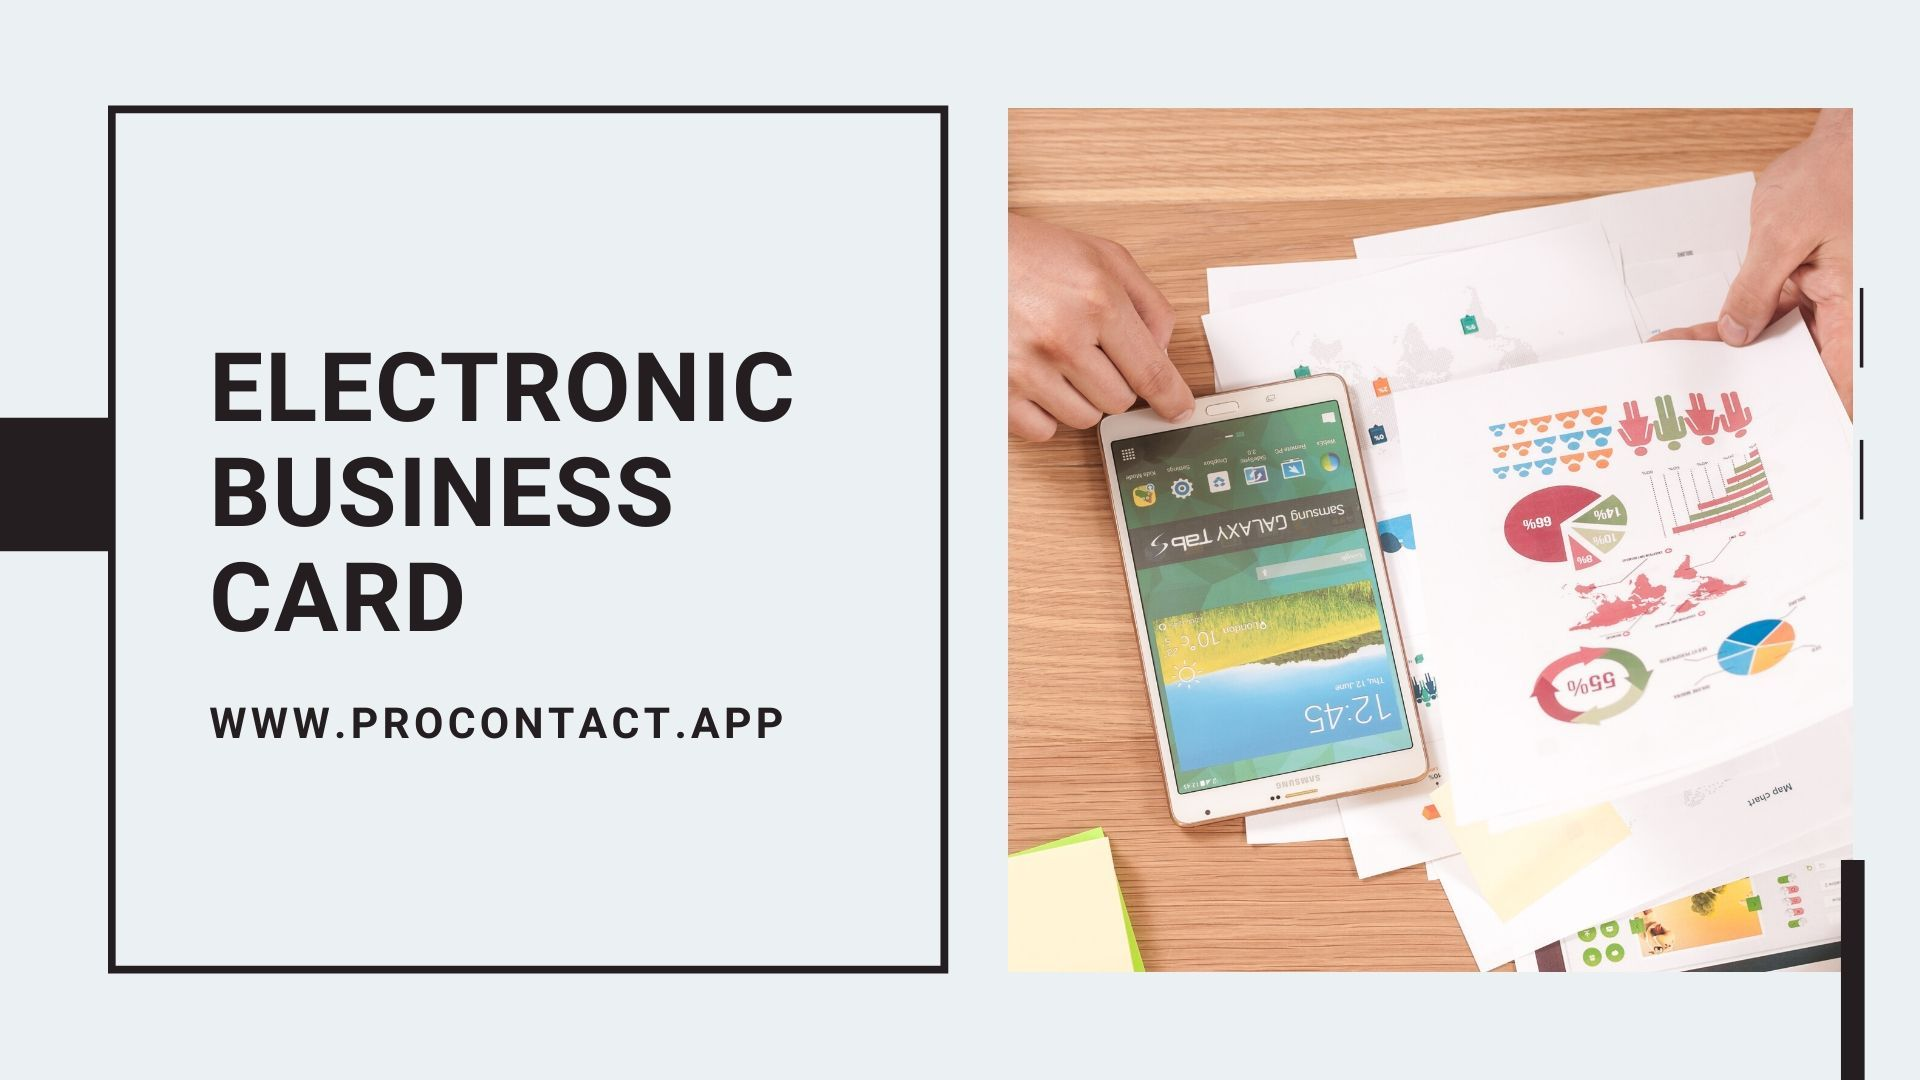 Customize Your Electronic Business Card Business Card App Digital Business Card Electronic Business